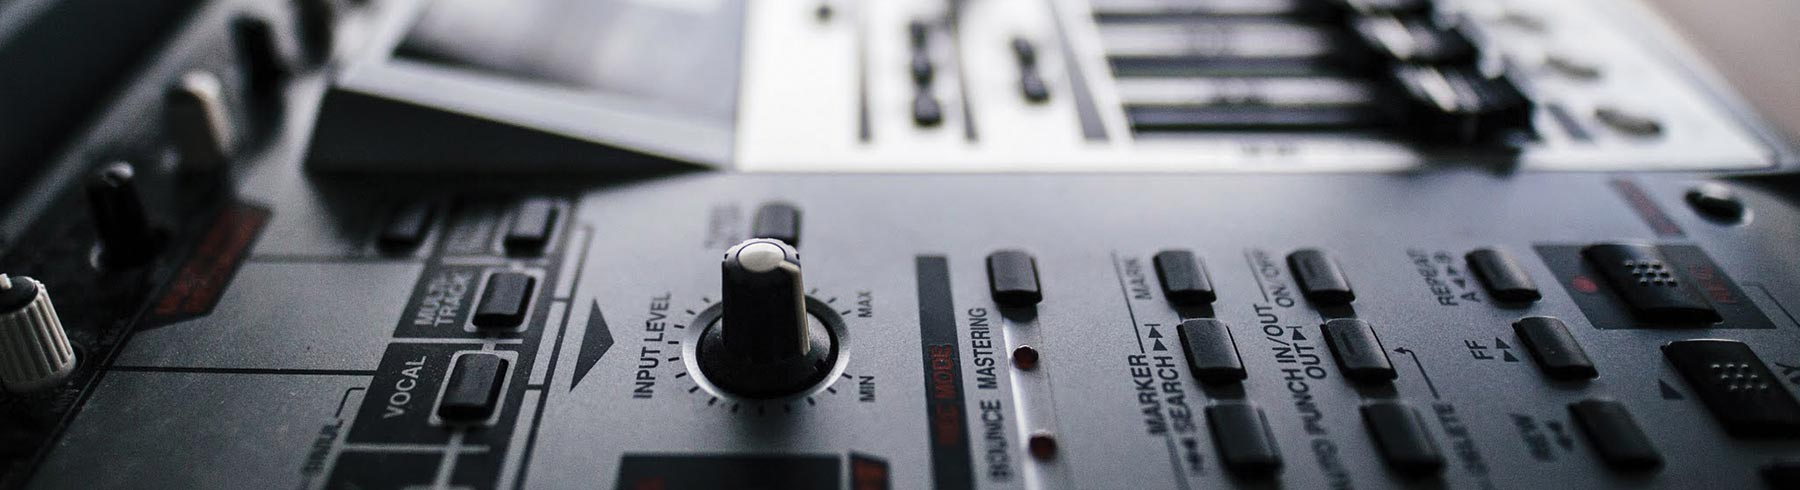 A closeup of the dials on a mixing deck